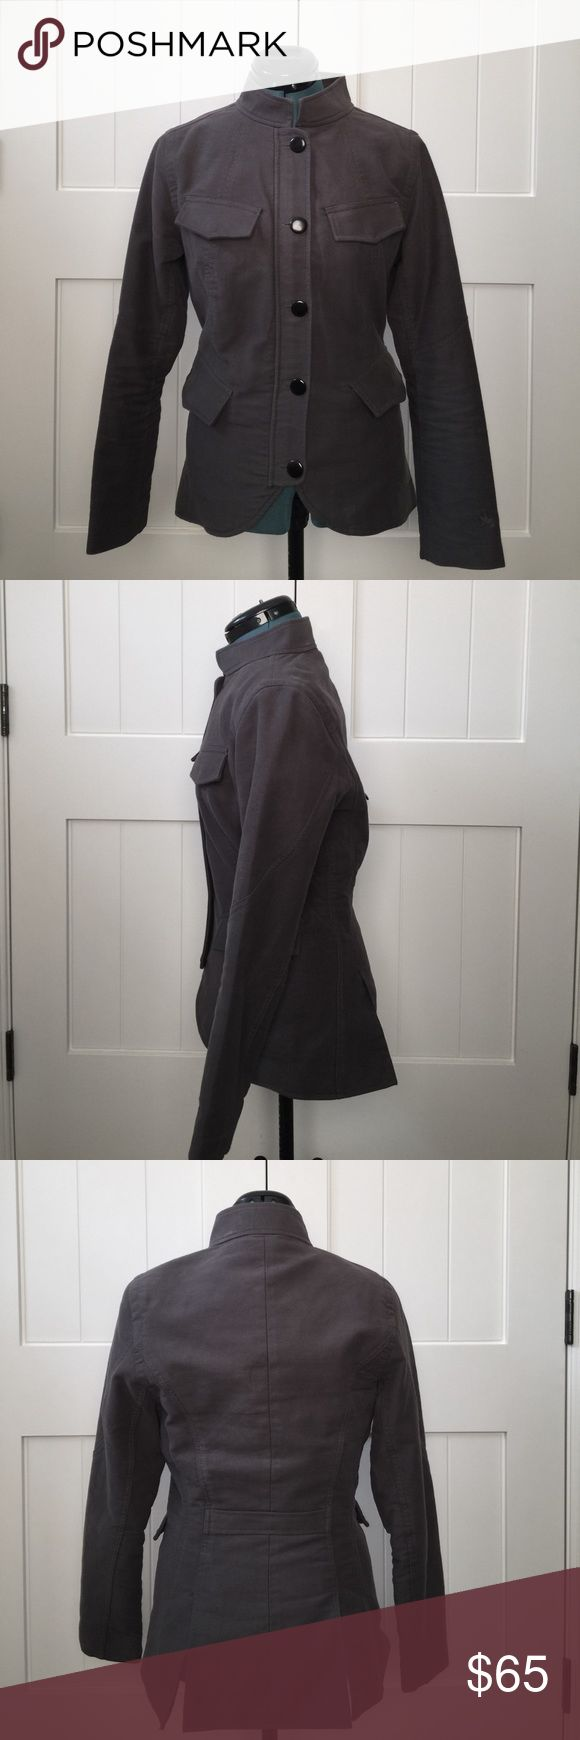 """Spiewalk Military Field Jacket Runs small. This jacket is made of thick cotton. It's fairly hefty. The color is grey/olive green. It's super stylish and perfect for a day in the 40's and 50's. Length is 25.5"""" Spiewalk Jackets & Coats Utility Jackets"""